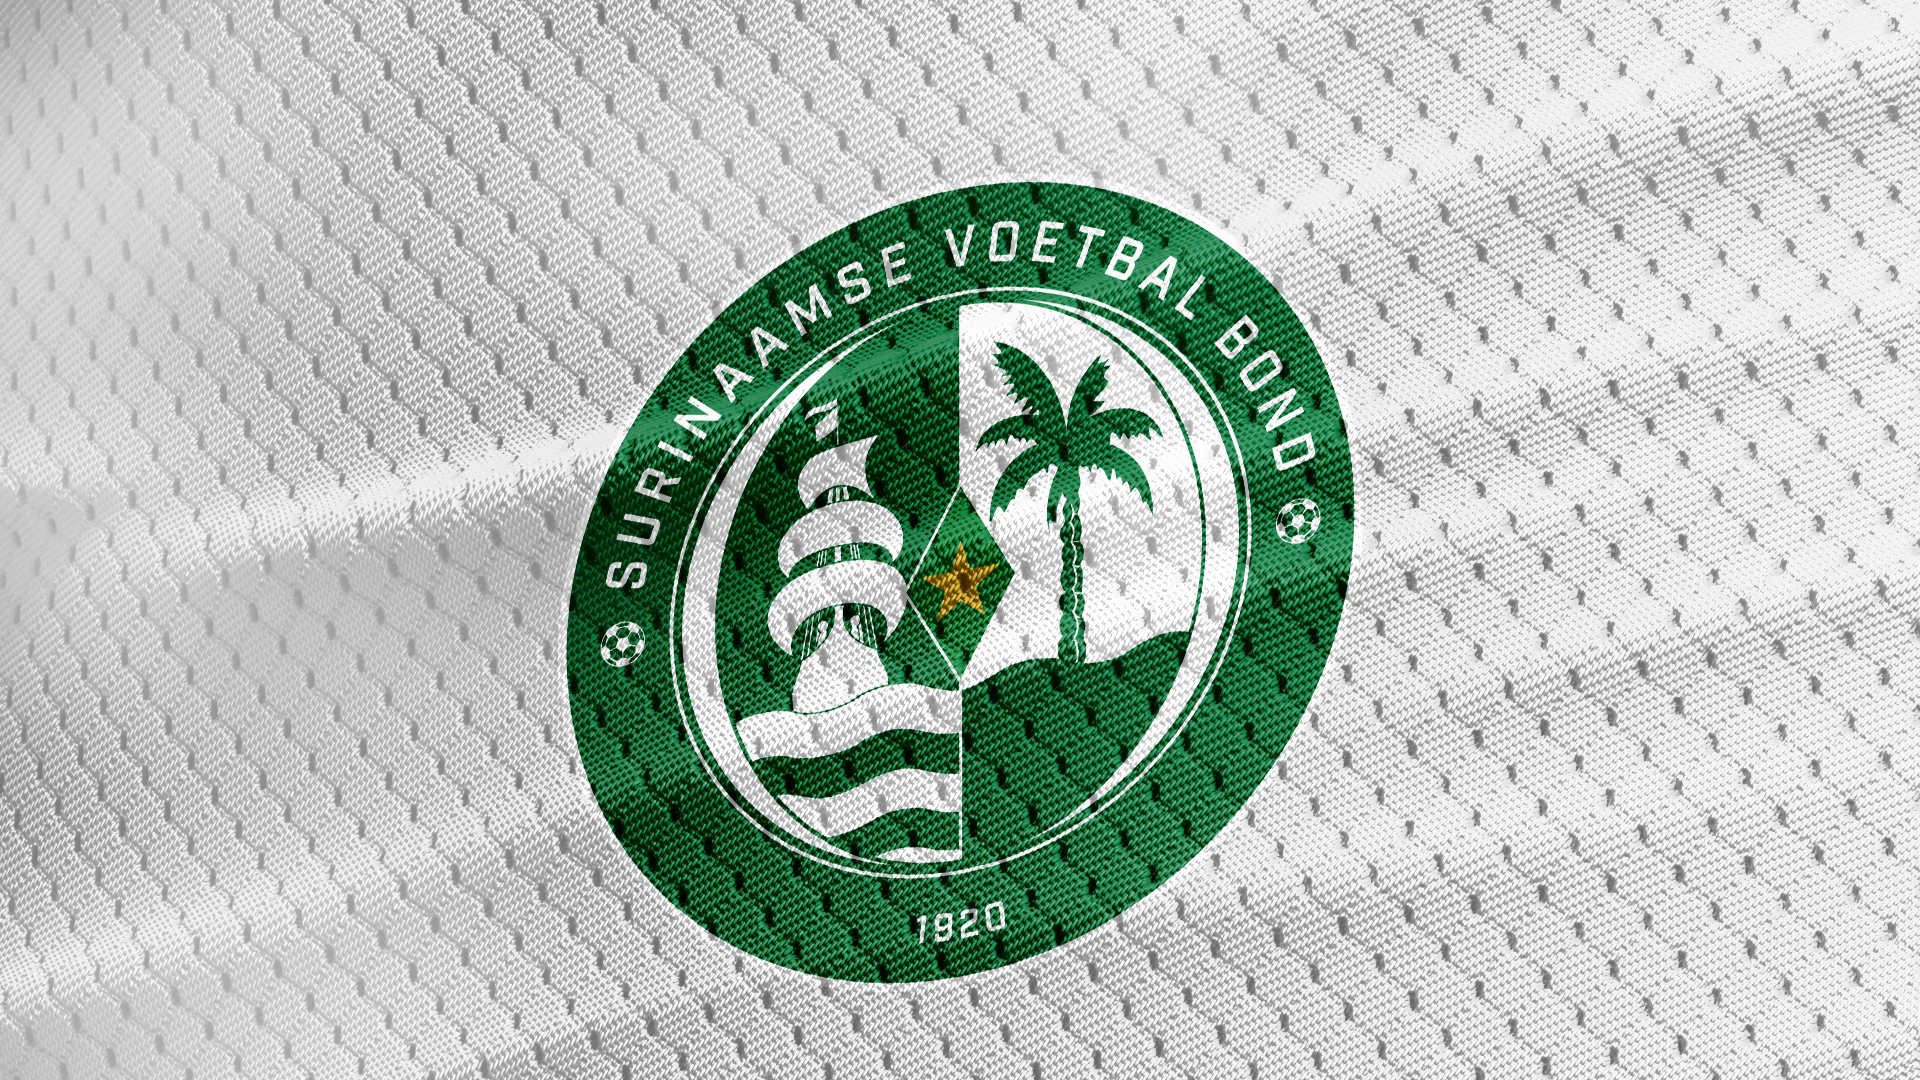 Surinaamse Voetbal Bond Logo on home kit